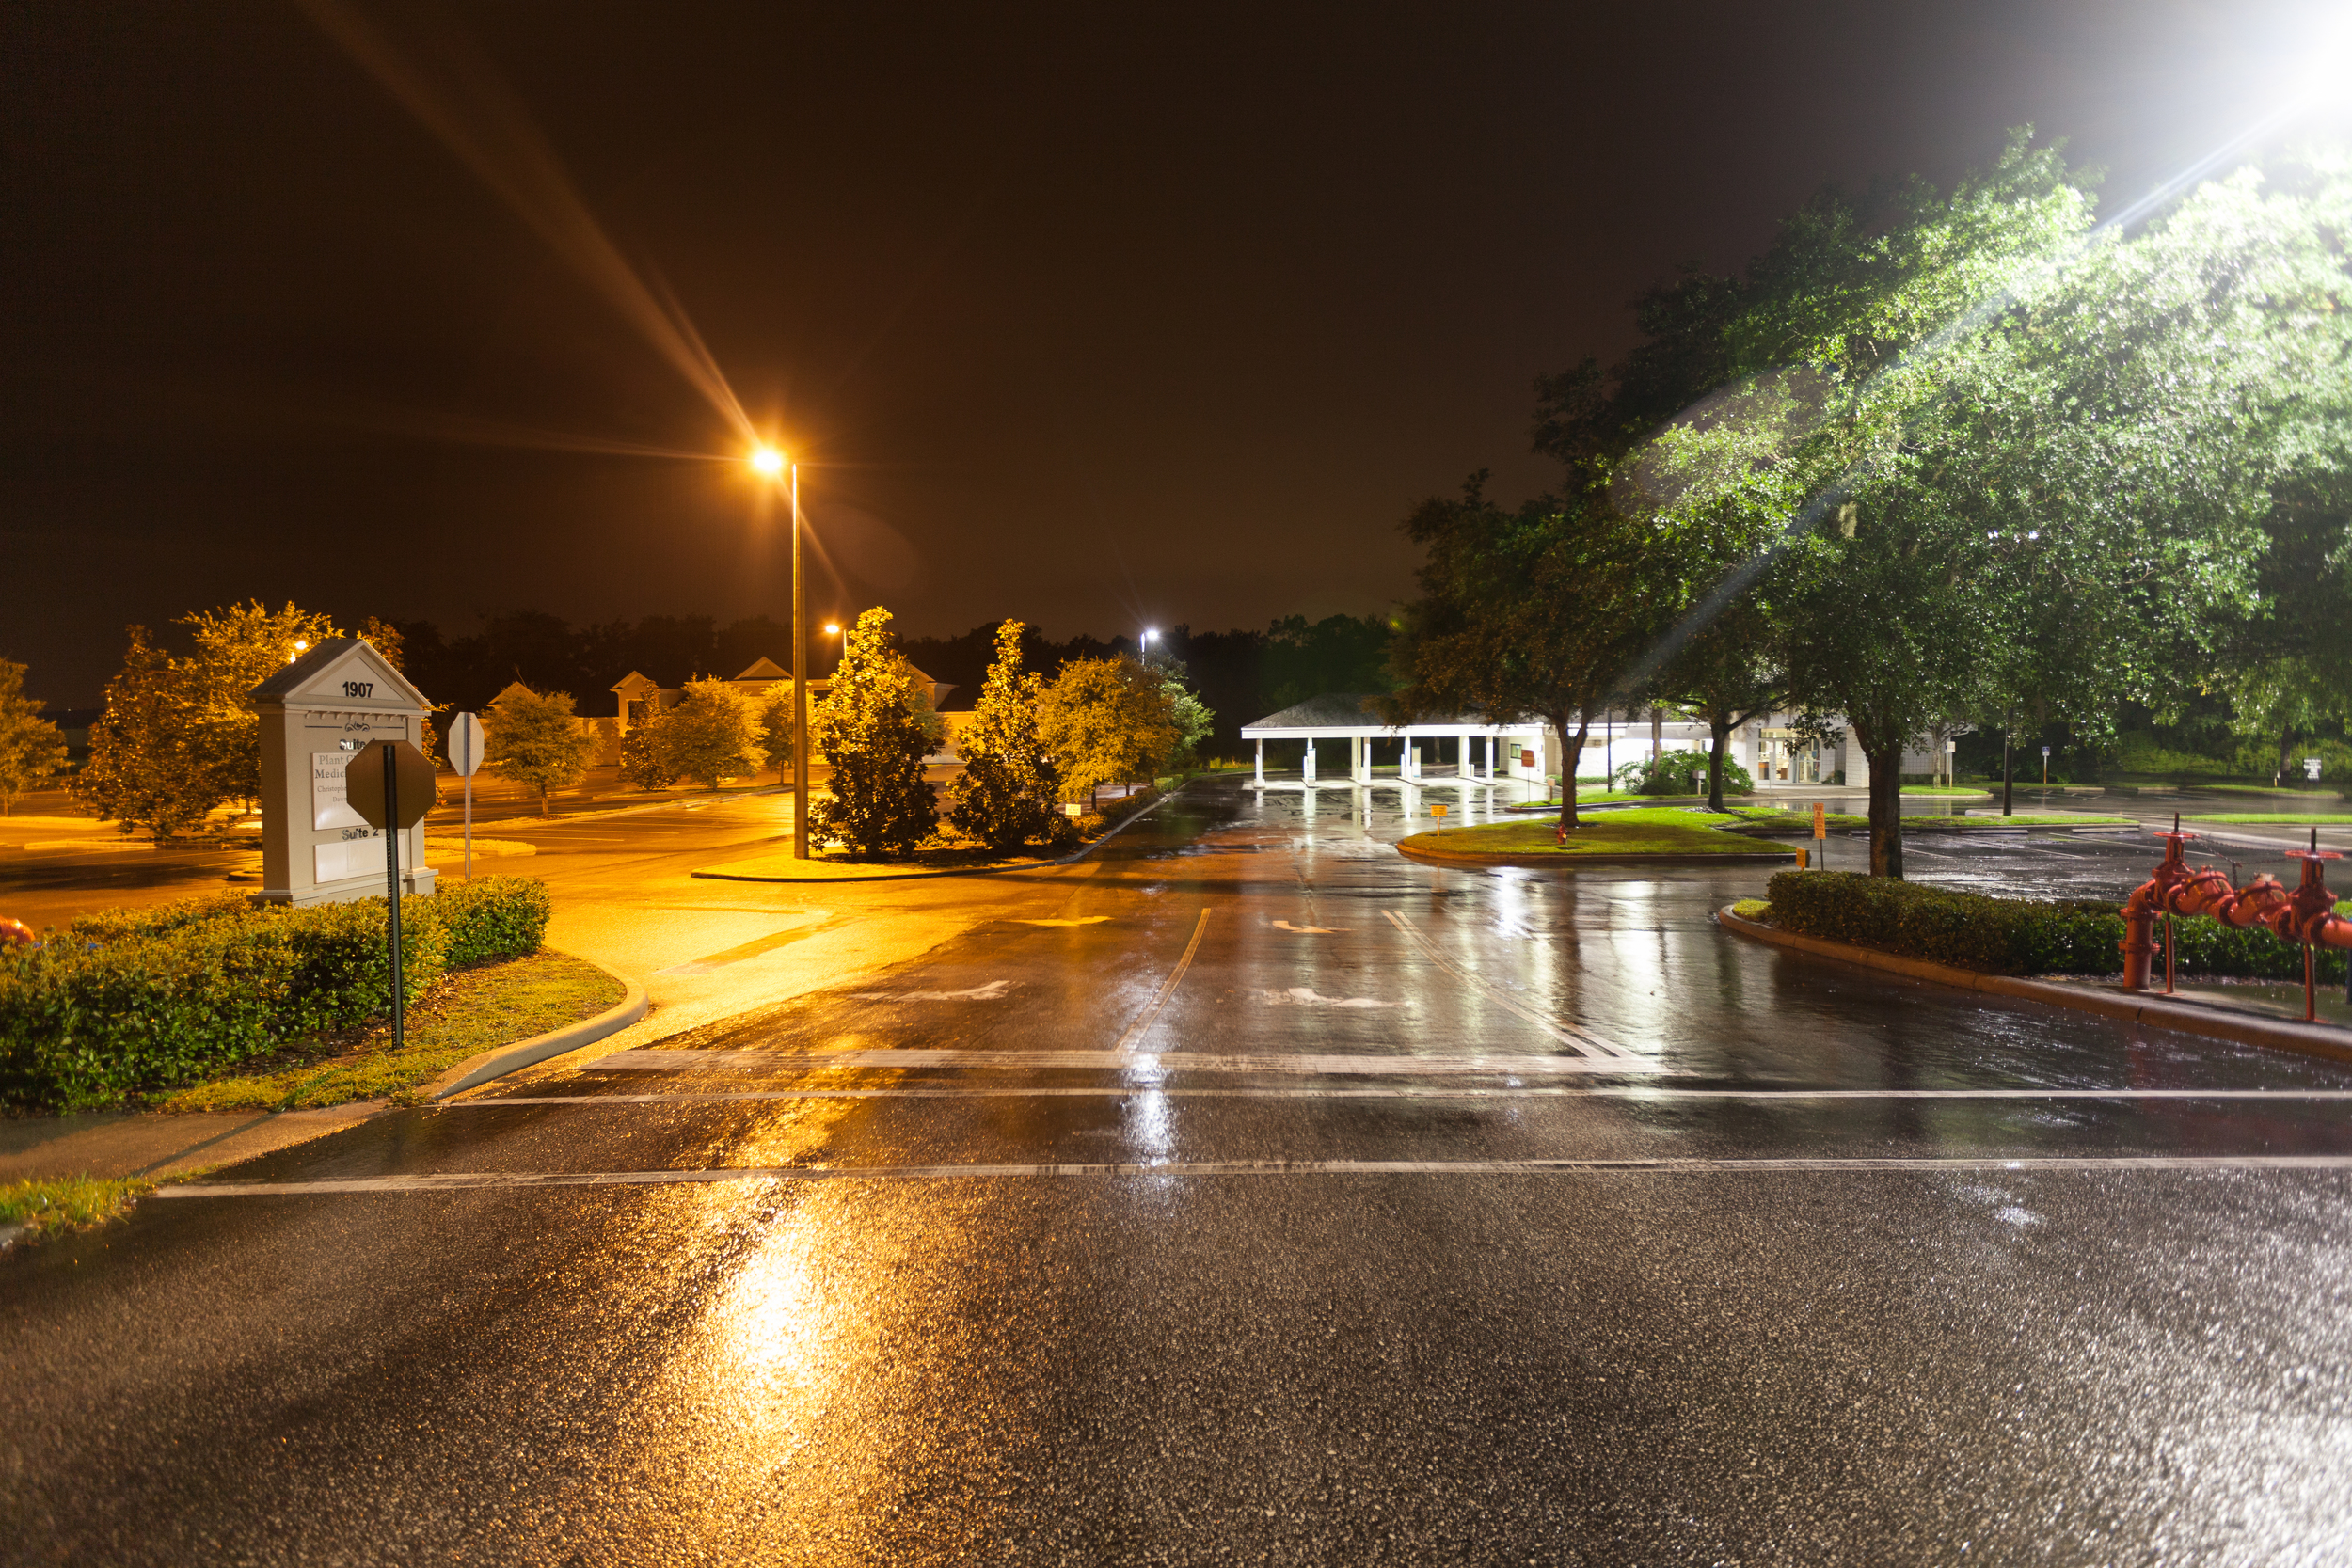 To the left standard high pressure sodium lights. To the right our crisp clean LED lighting platforms